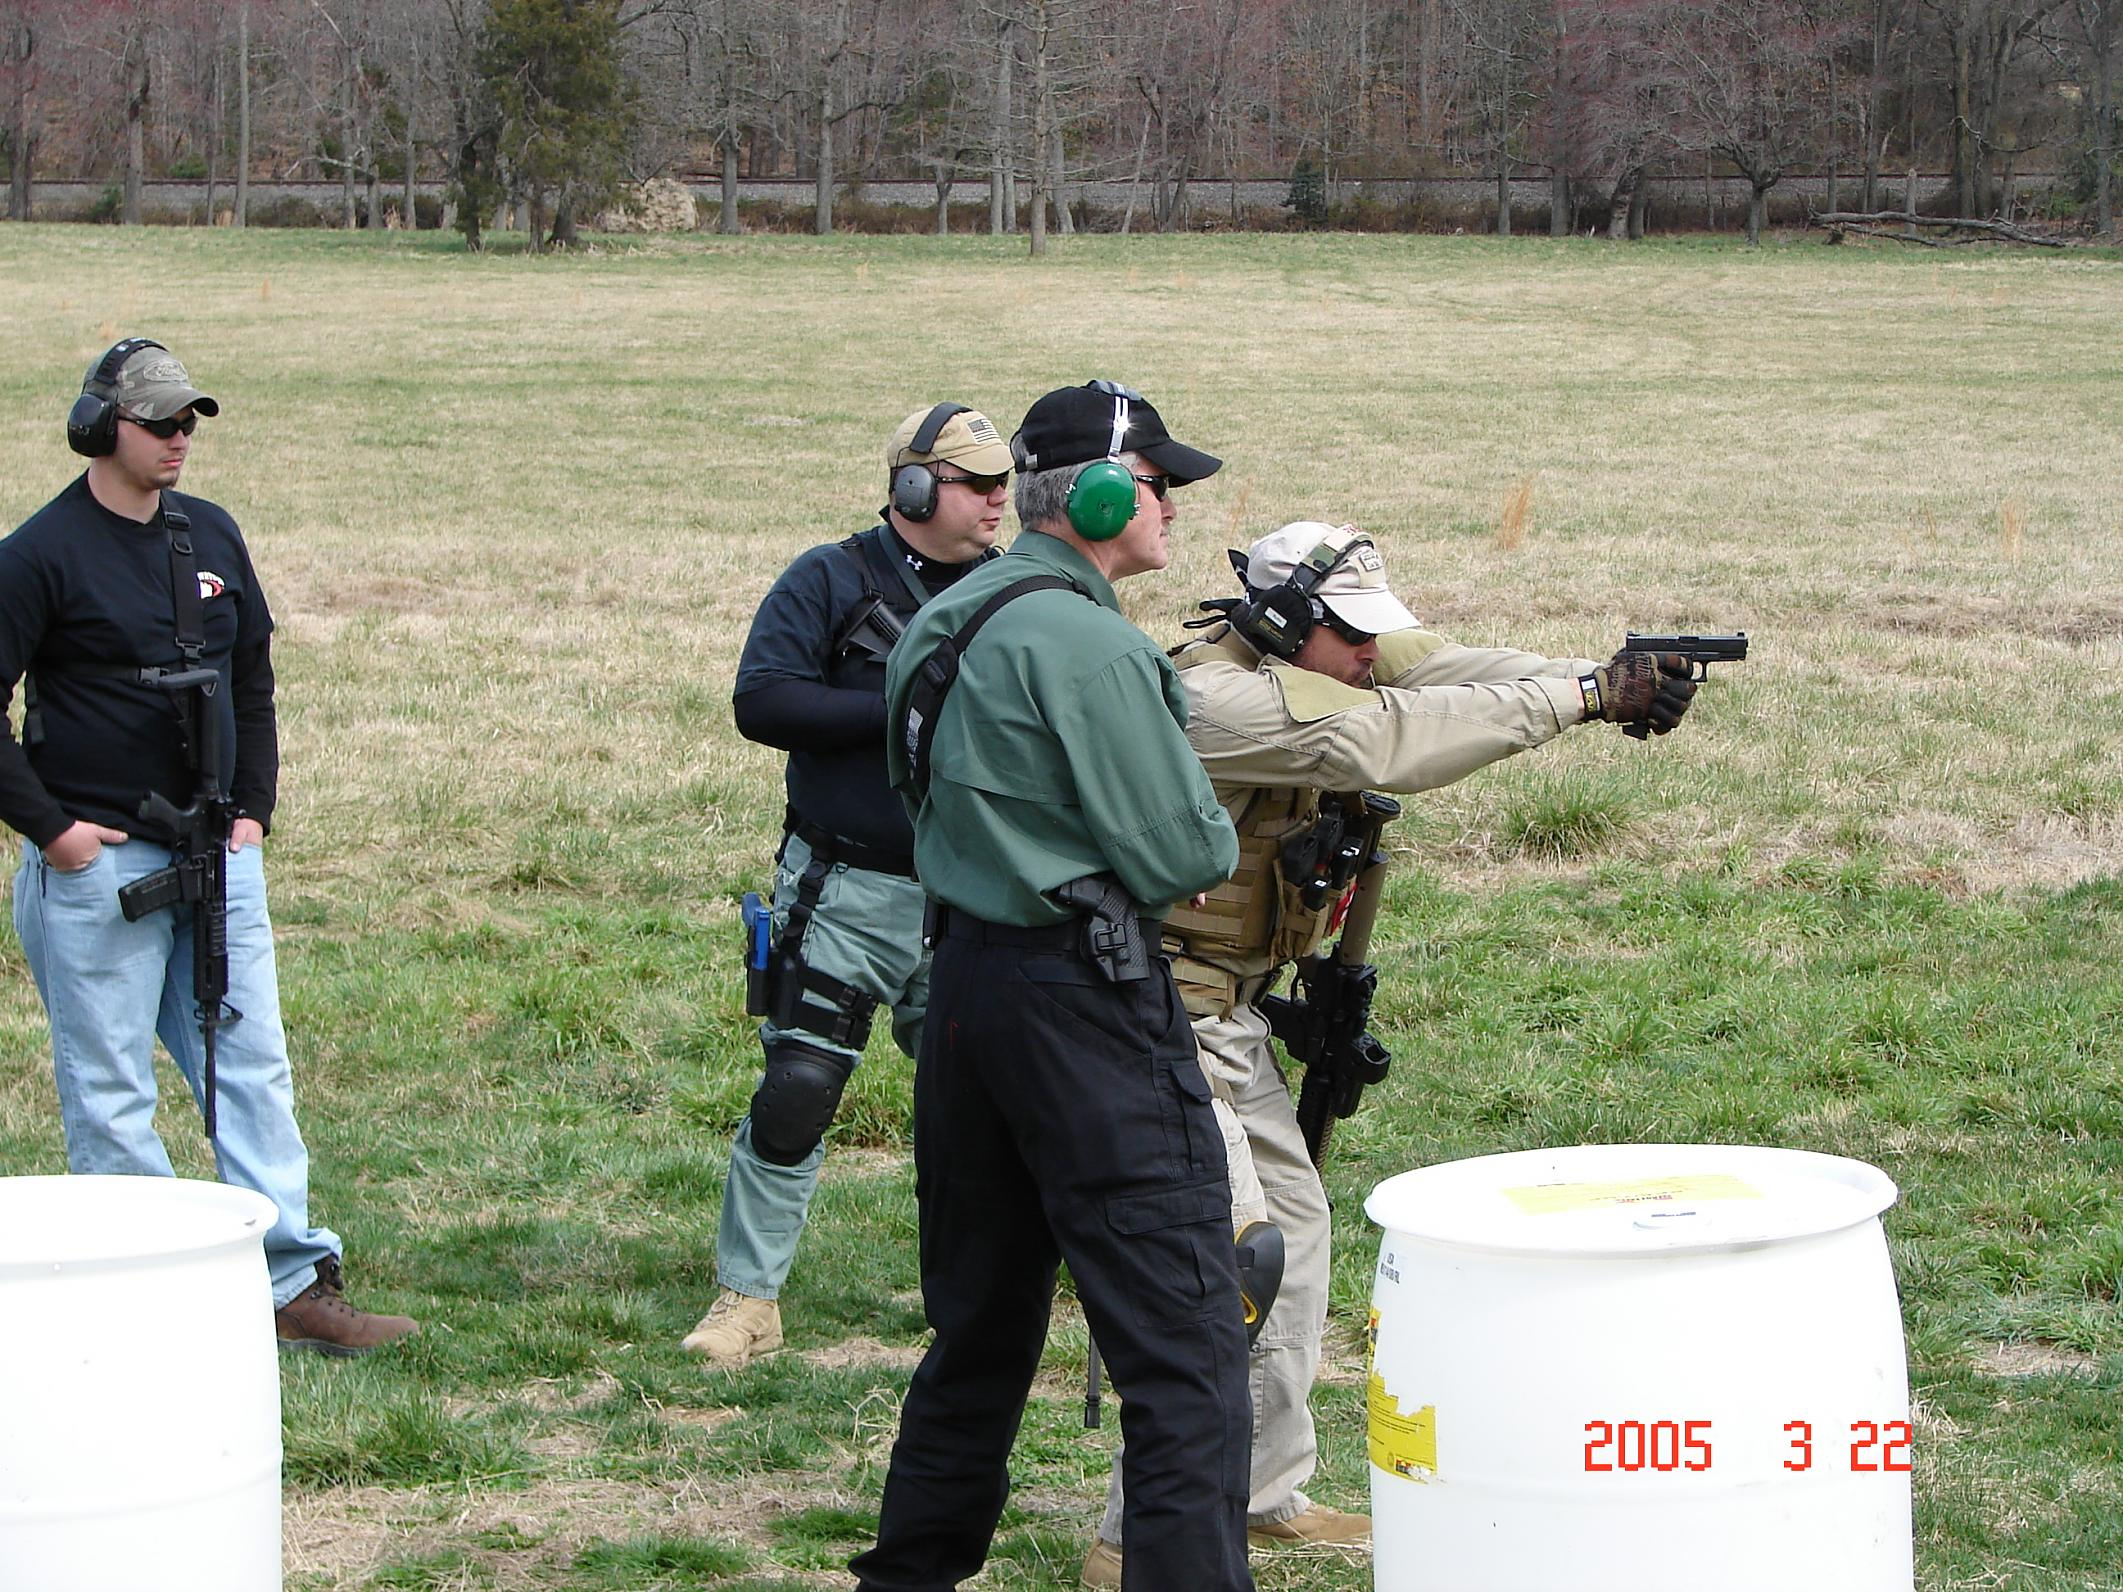 Pictures from the PTTA M4/ Tactical Carbine Course-025.jpg